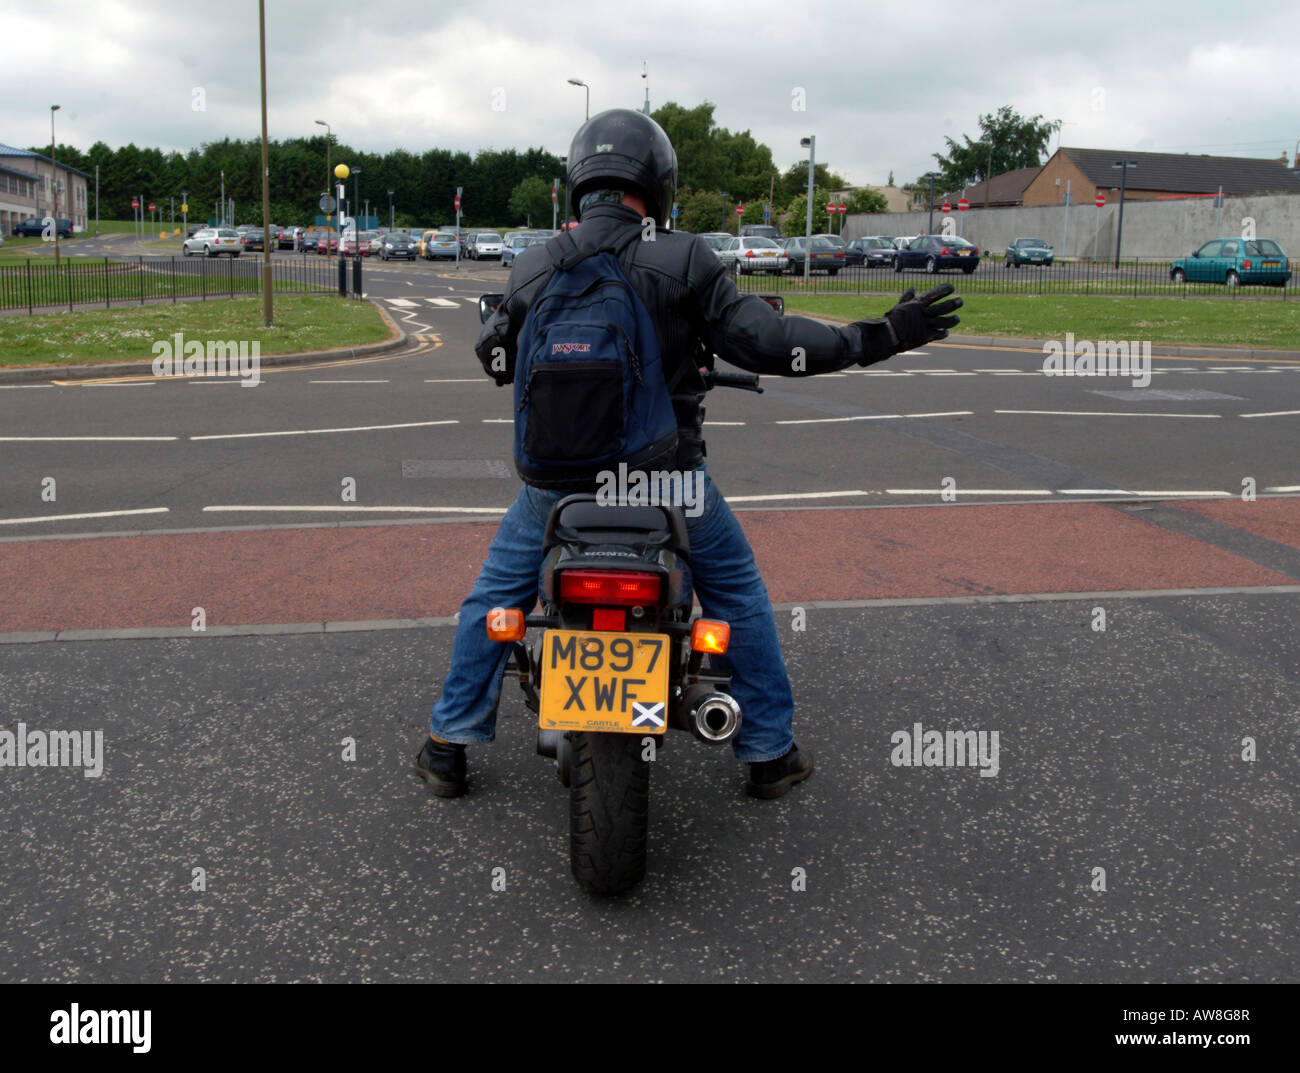 A motorcyclist signalling to turn right - Stock Image